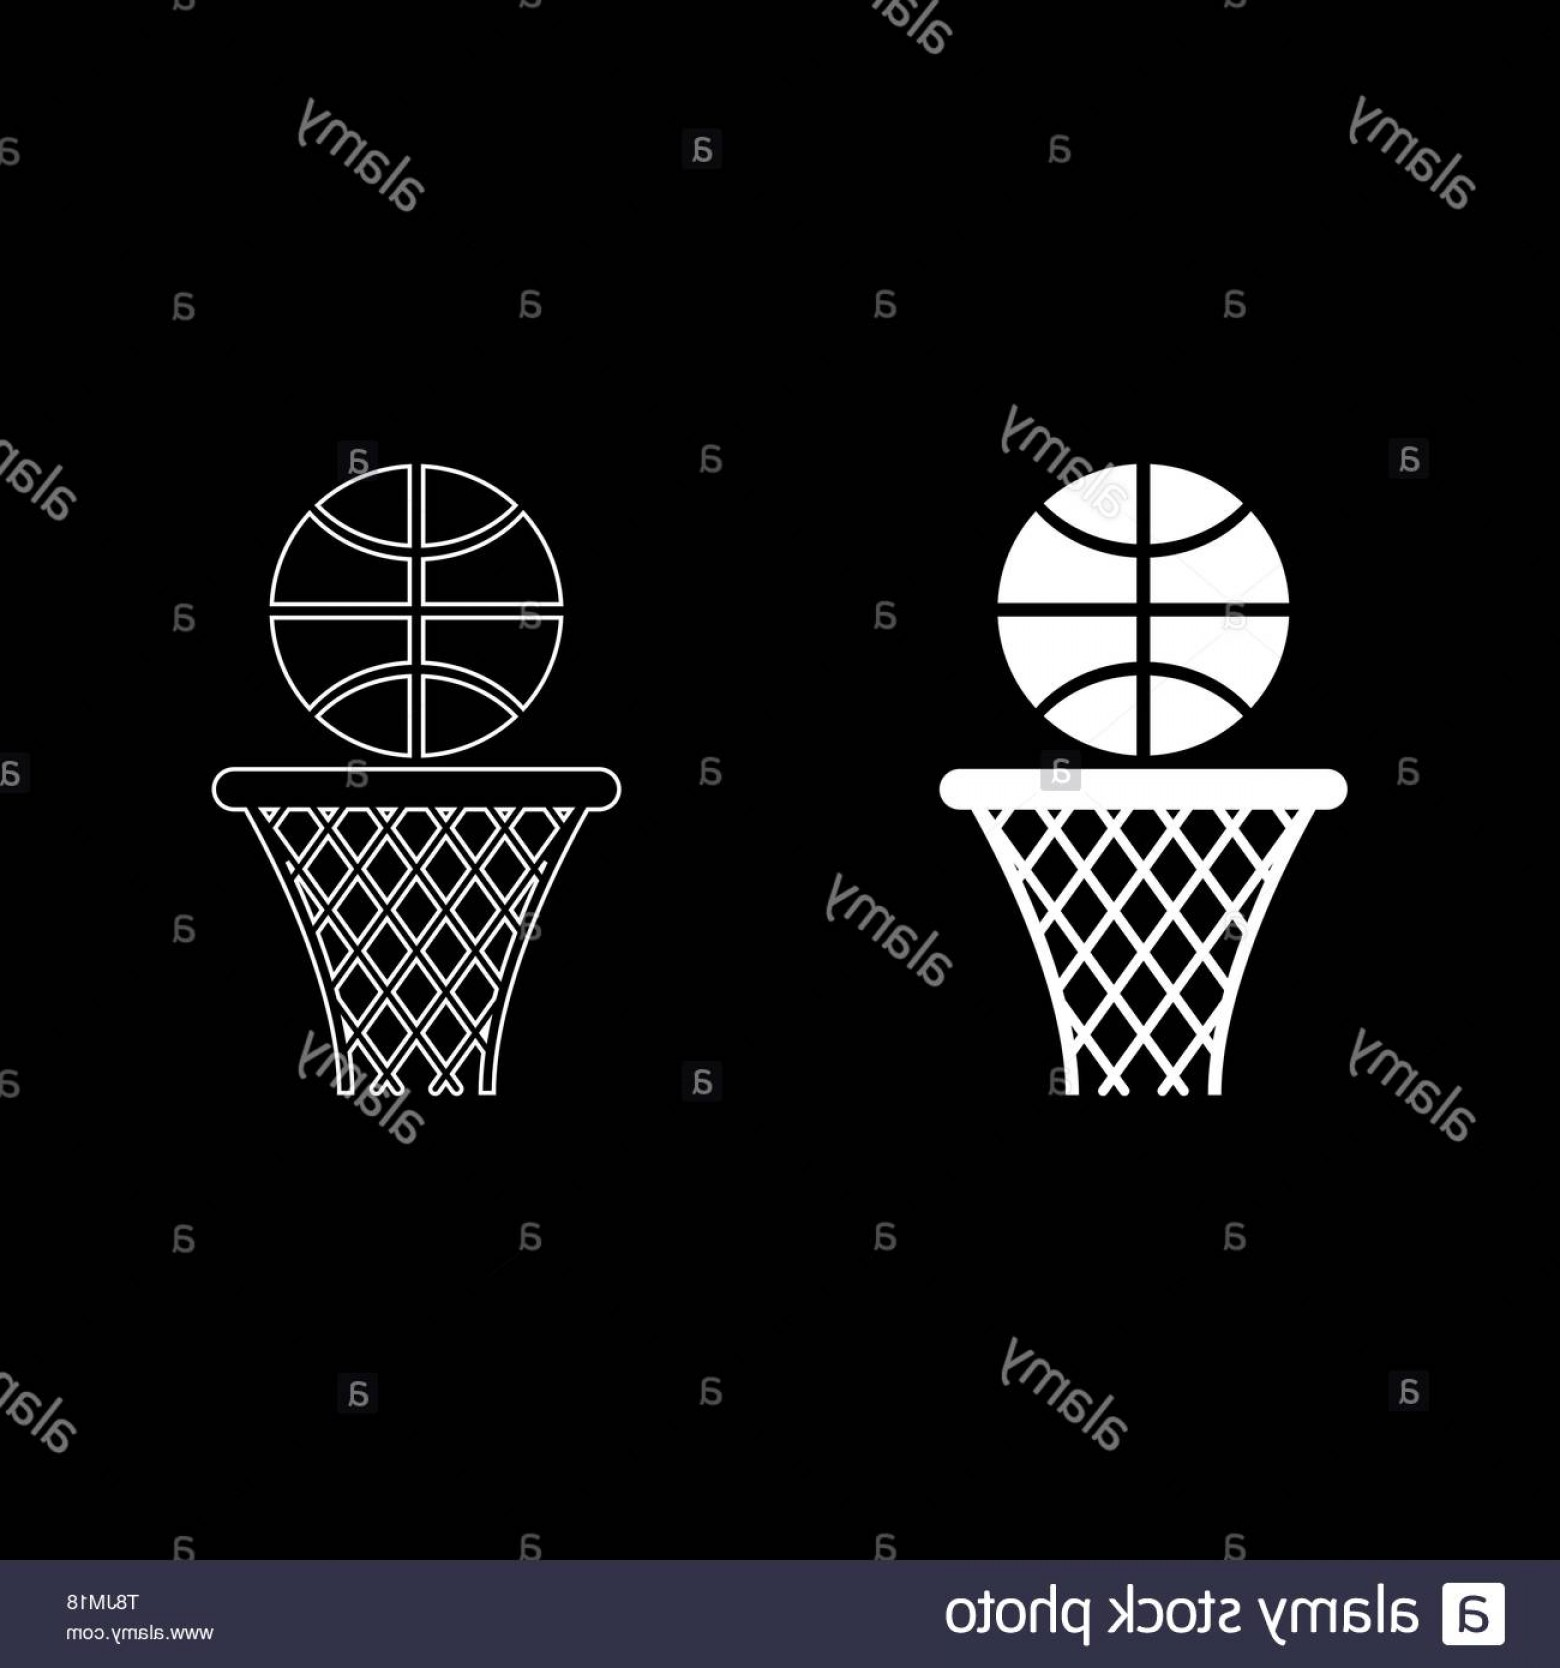 Color Basketball Outline Vector: Basketball Basket And Ball Hoop Net And Ball Icon Outline Set White Color Vector Illustration Flat Style Simple Image Image